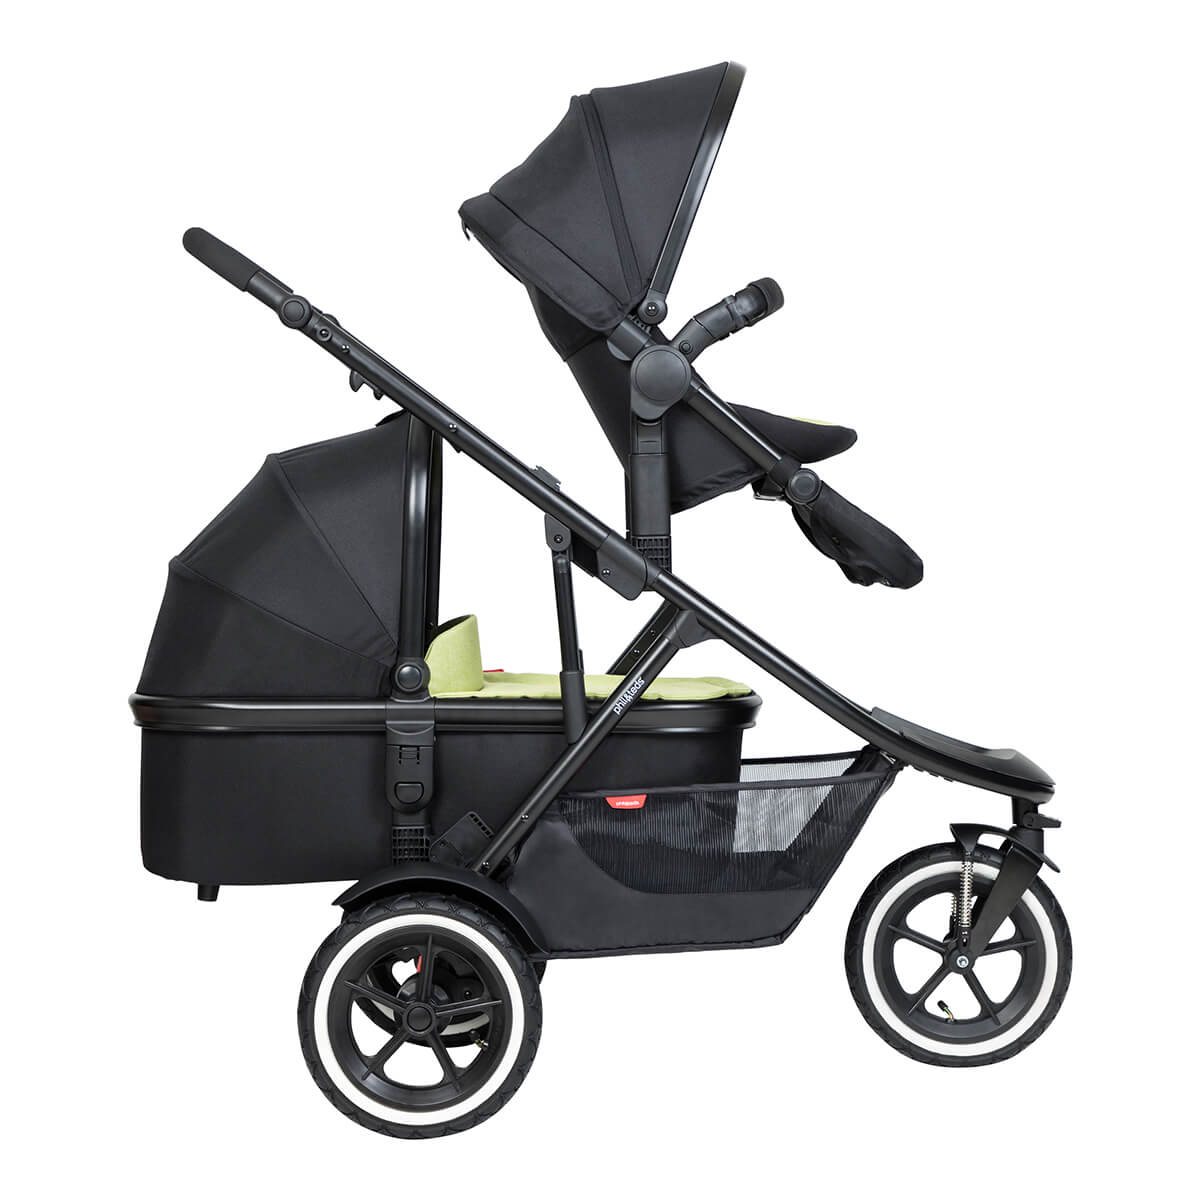 https://cdn.accentuate.io/4384002474081/19793939726506/philteds-sport-buggy-with-double-kit-extended-clip-and-snug-carrycot-side-view-v1626147561290.jpg?1200x1200